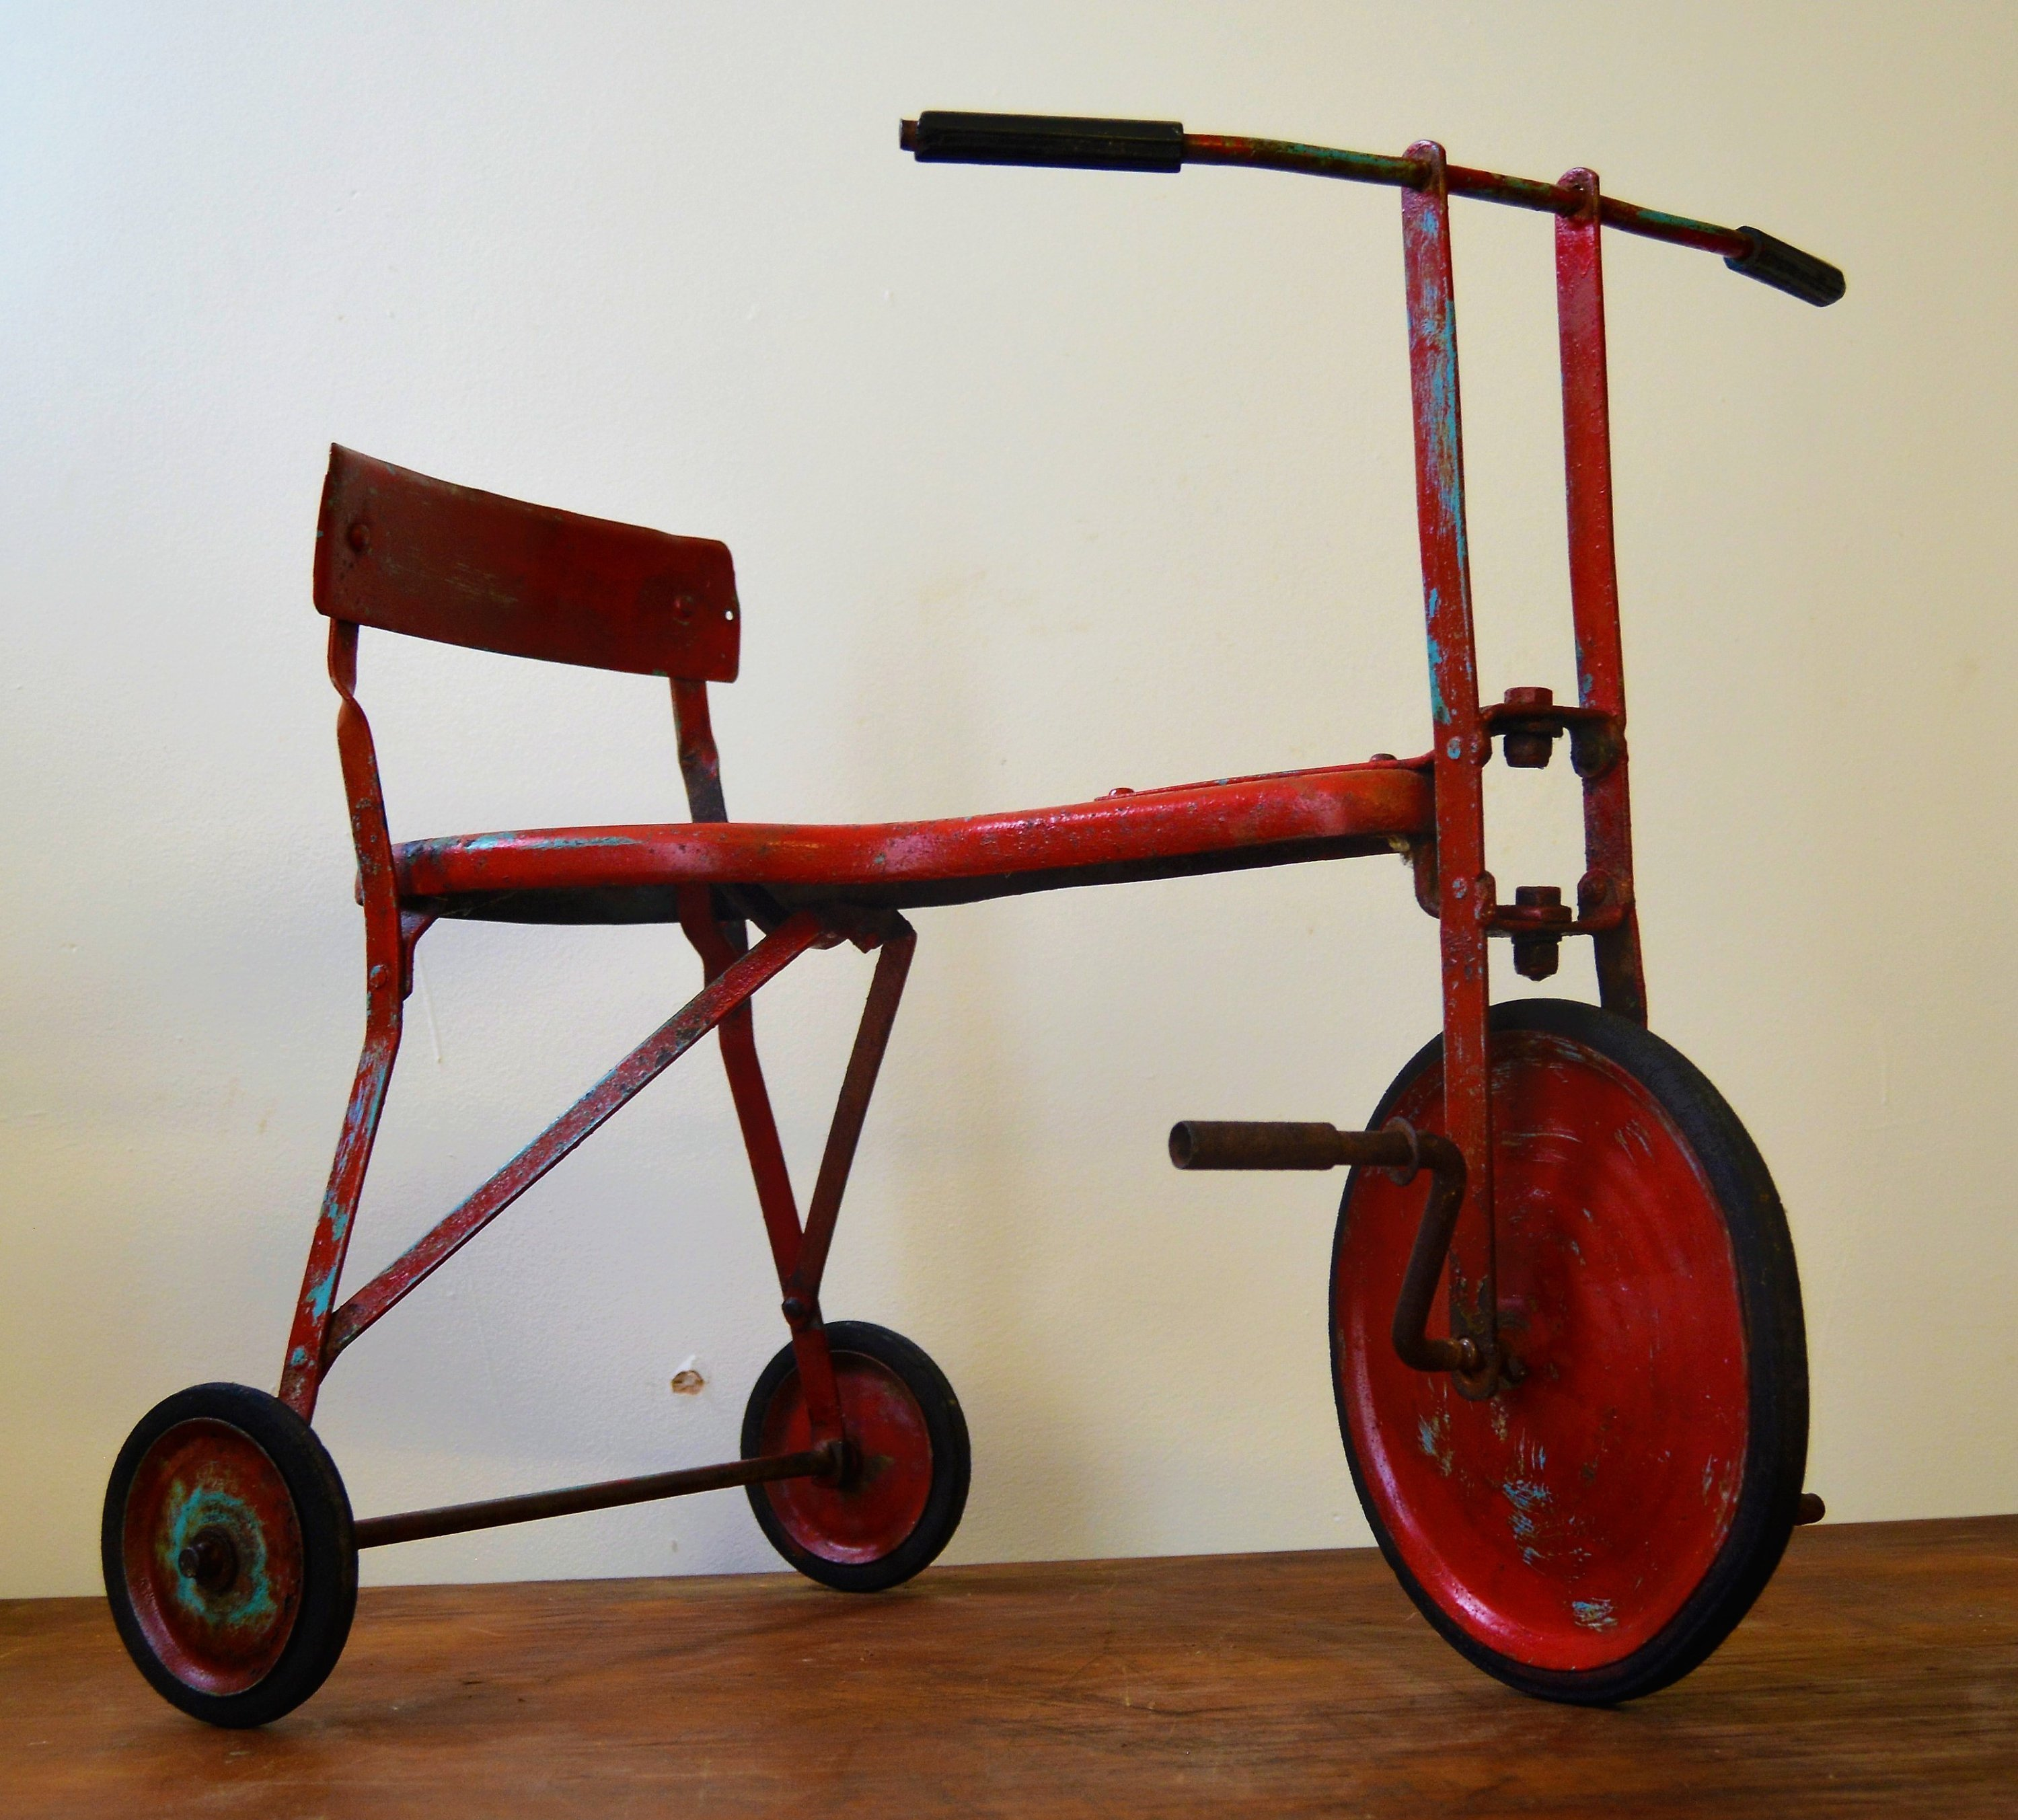 1960s Chids Toy Pedal Vintage Tricycle Cycle Bicycle Old Antique Industrial Triang Old Kids Decor Vinterior